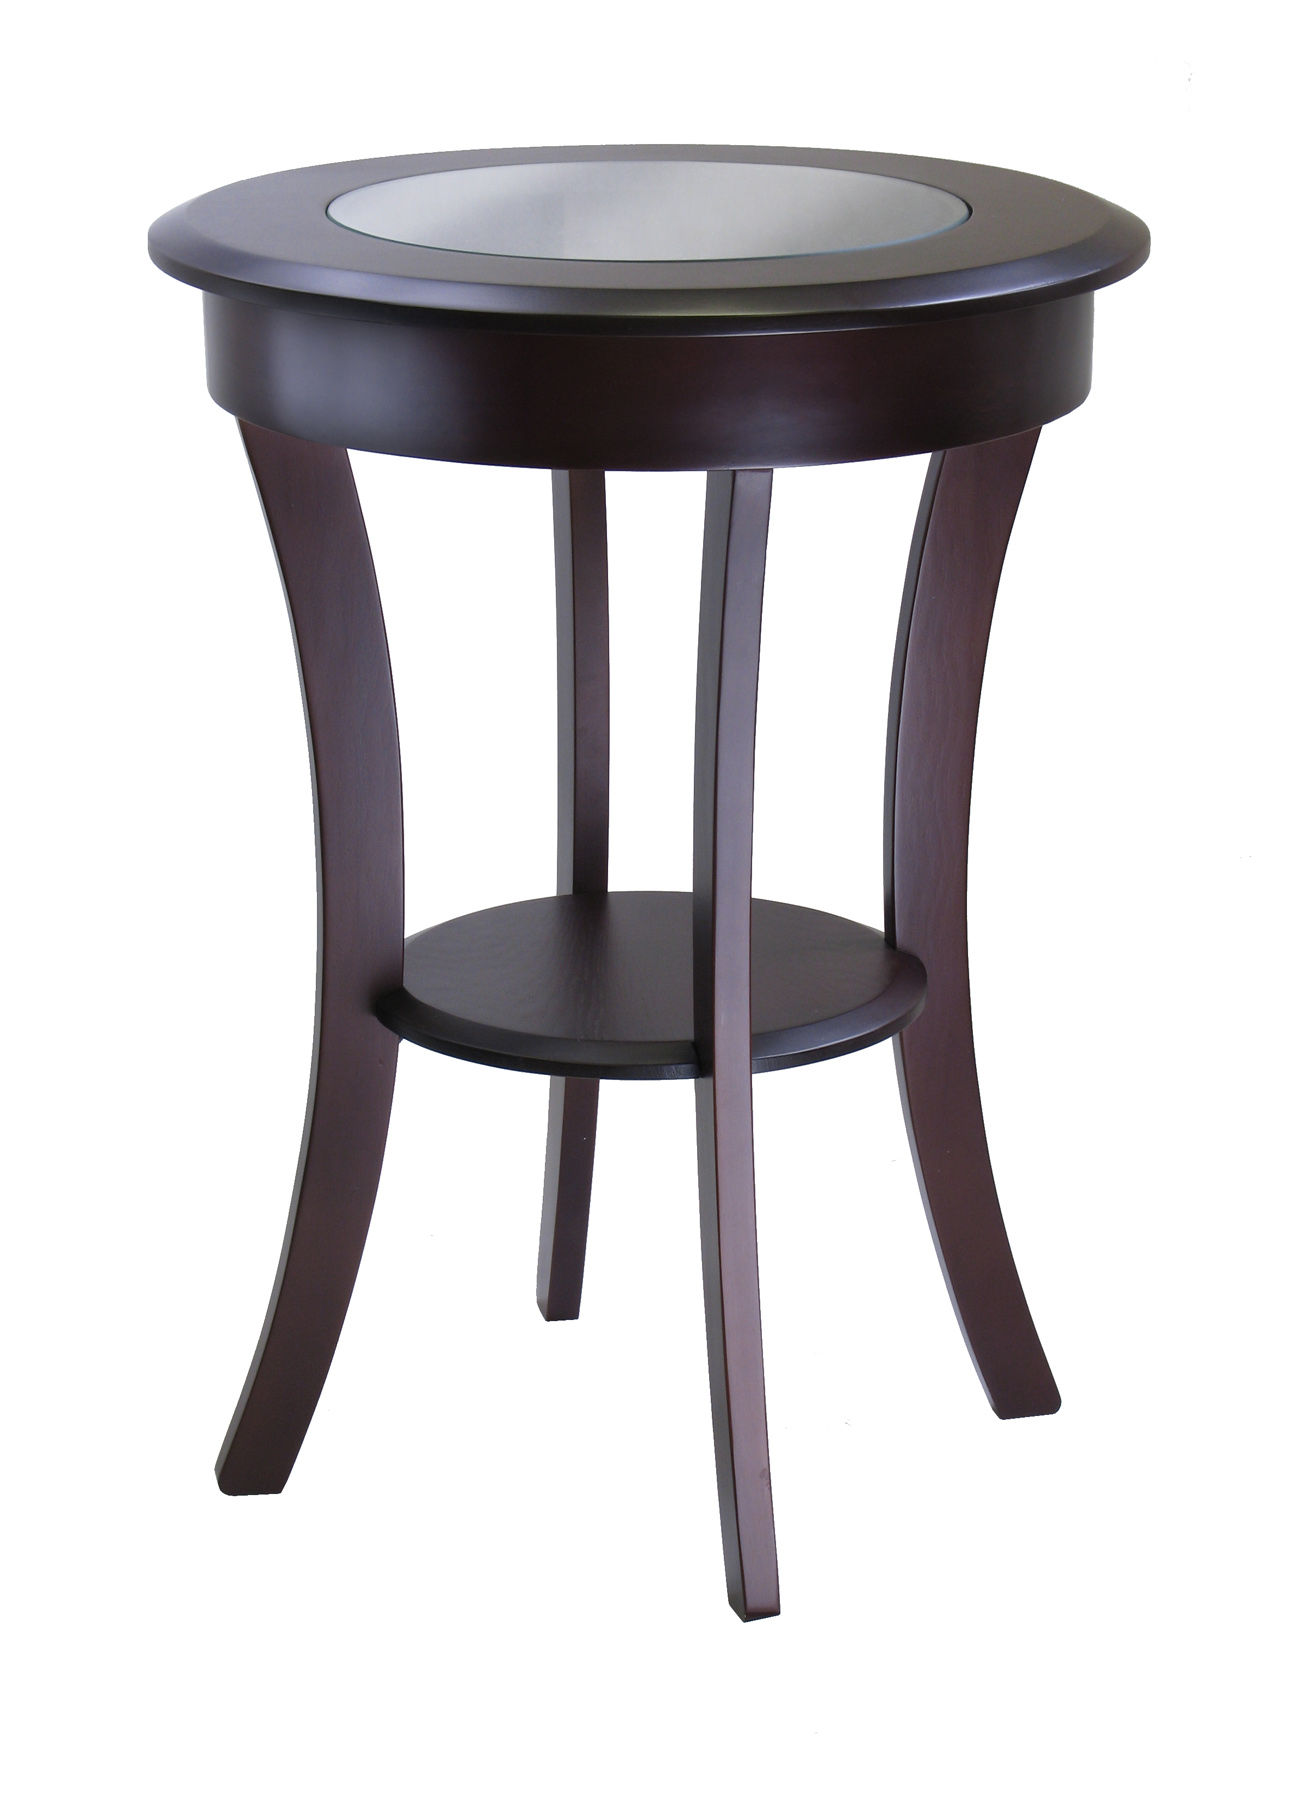 hutton chase living room cassie round accent table with glass eugene walnut patio end sage paint gloss side french small black gold lamp looking for tables nautical pole lamps